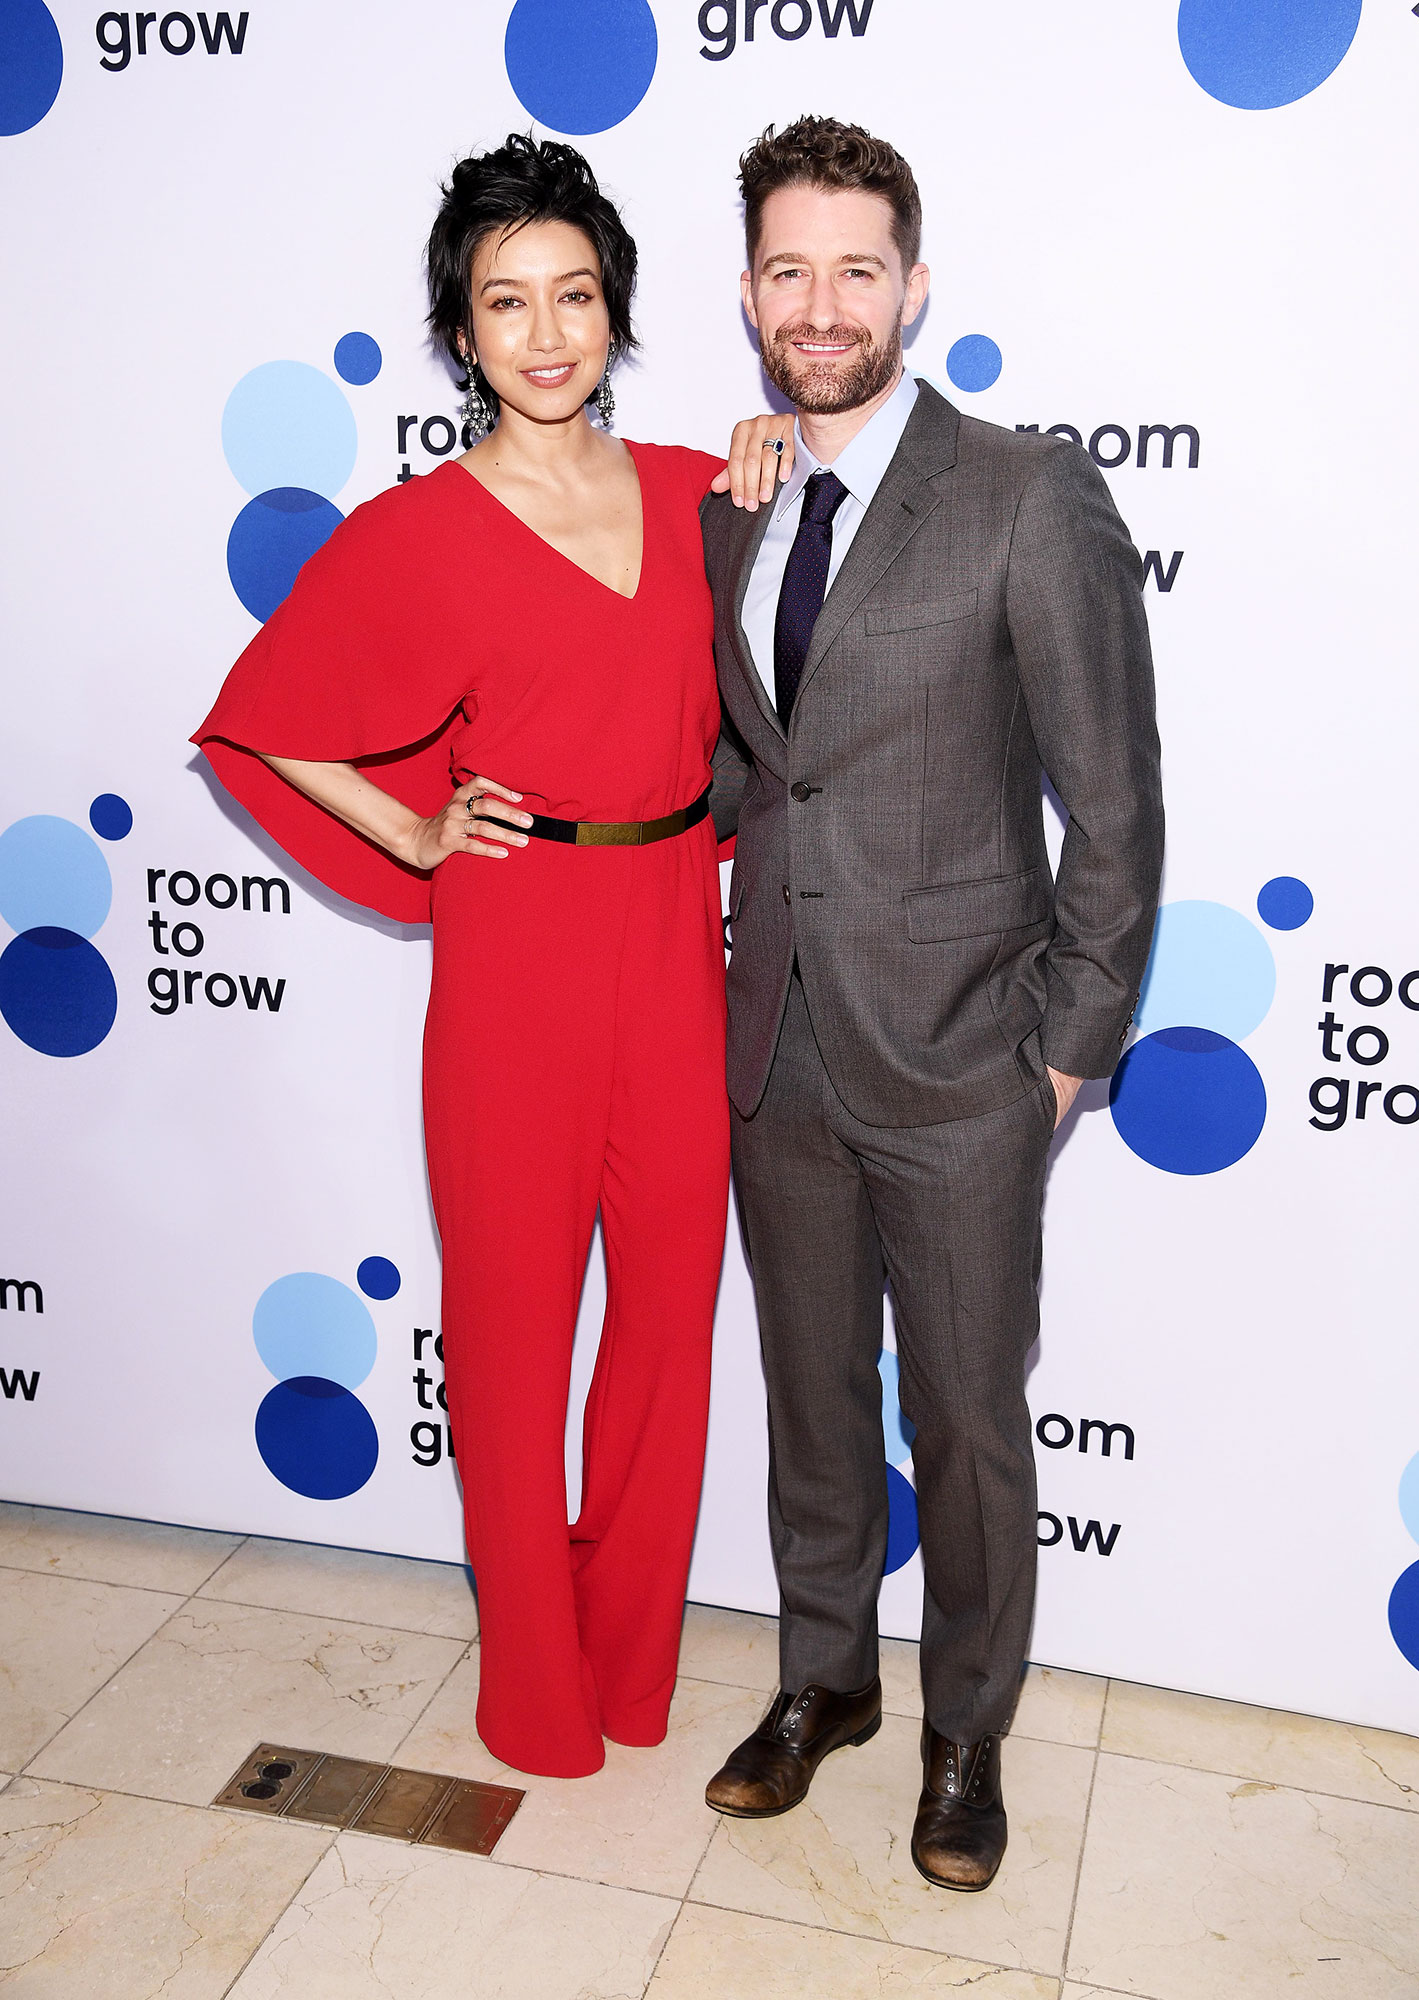 """Matthew Morrison Reveals When He'll Let His Son Watch Him 'in His Prime' on 'Glee' - Renee Puente and Matthew Morrison attend """"Room To Grow"""" Spring Benefit at Guastavino's on April 04, 2019 in New York City."""